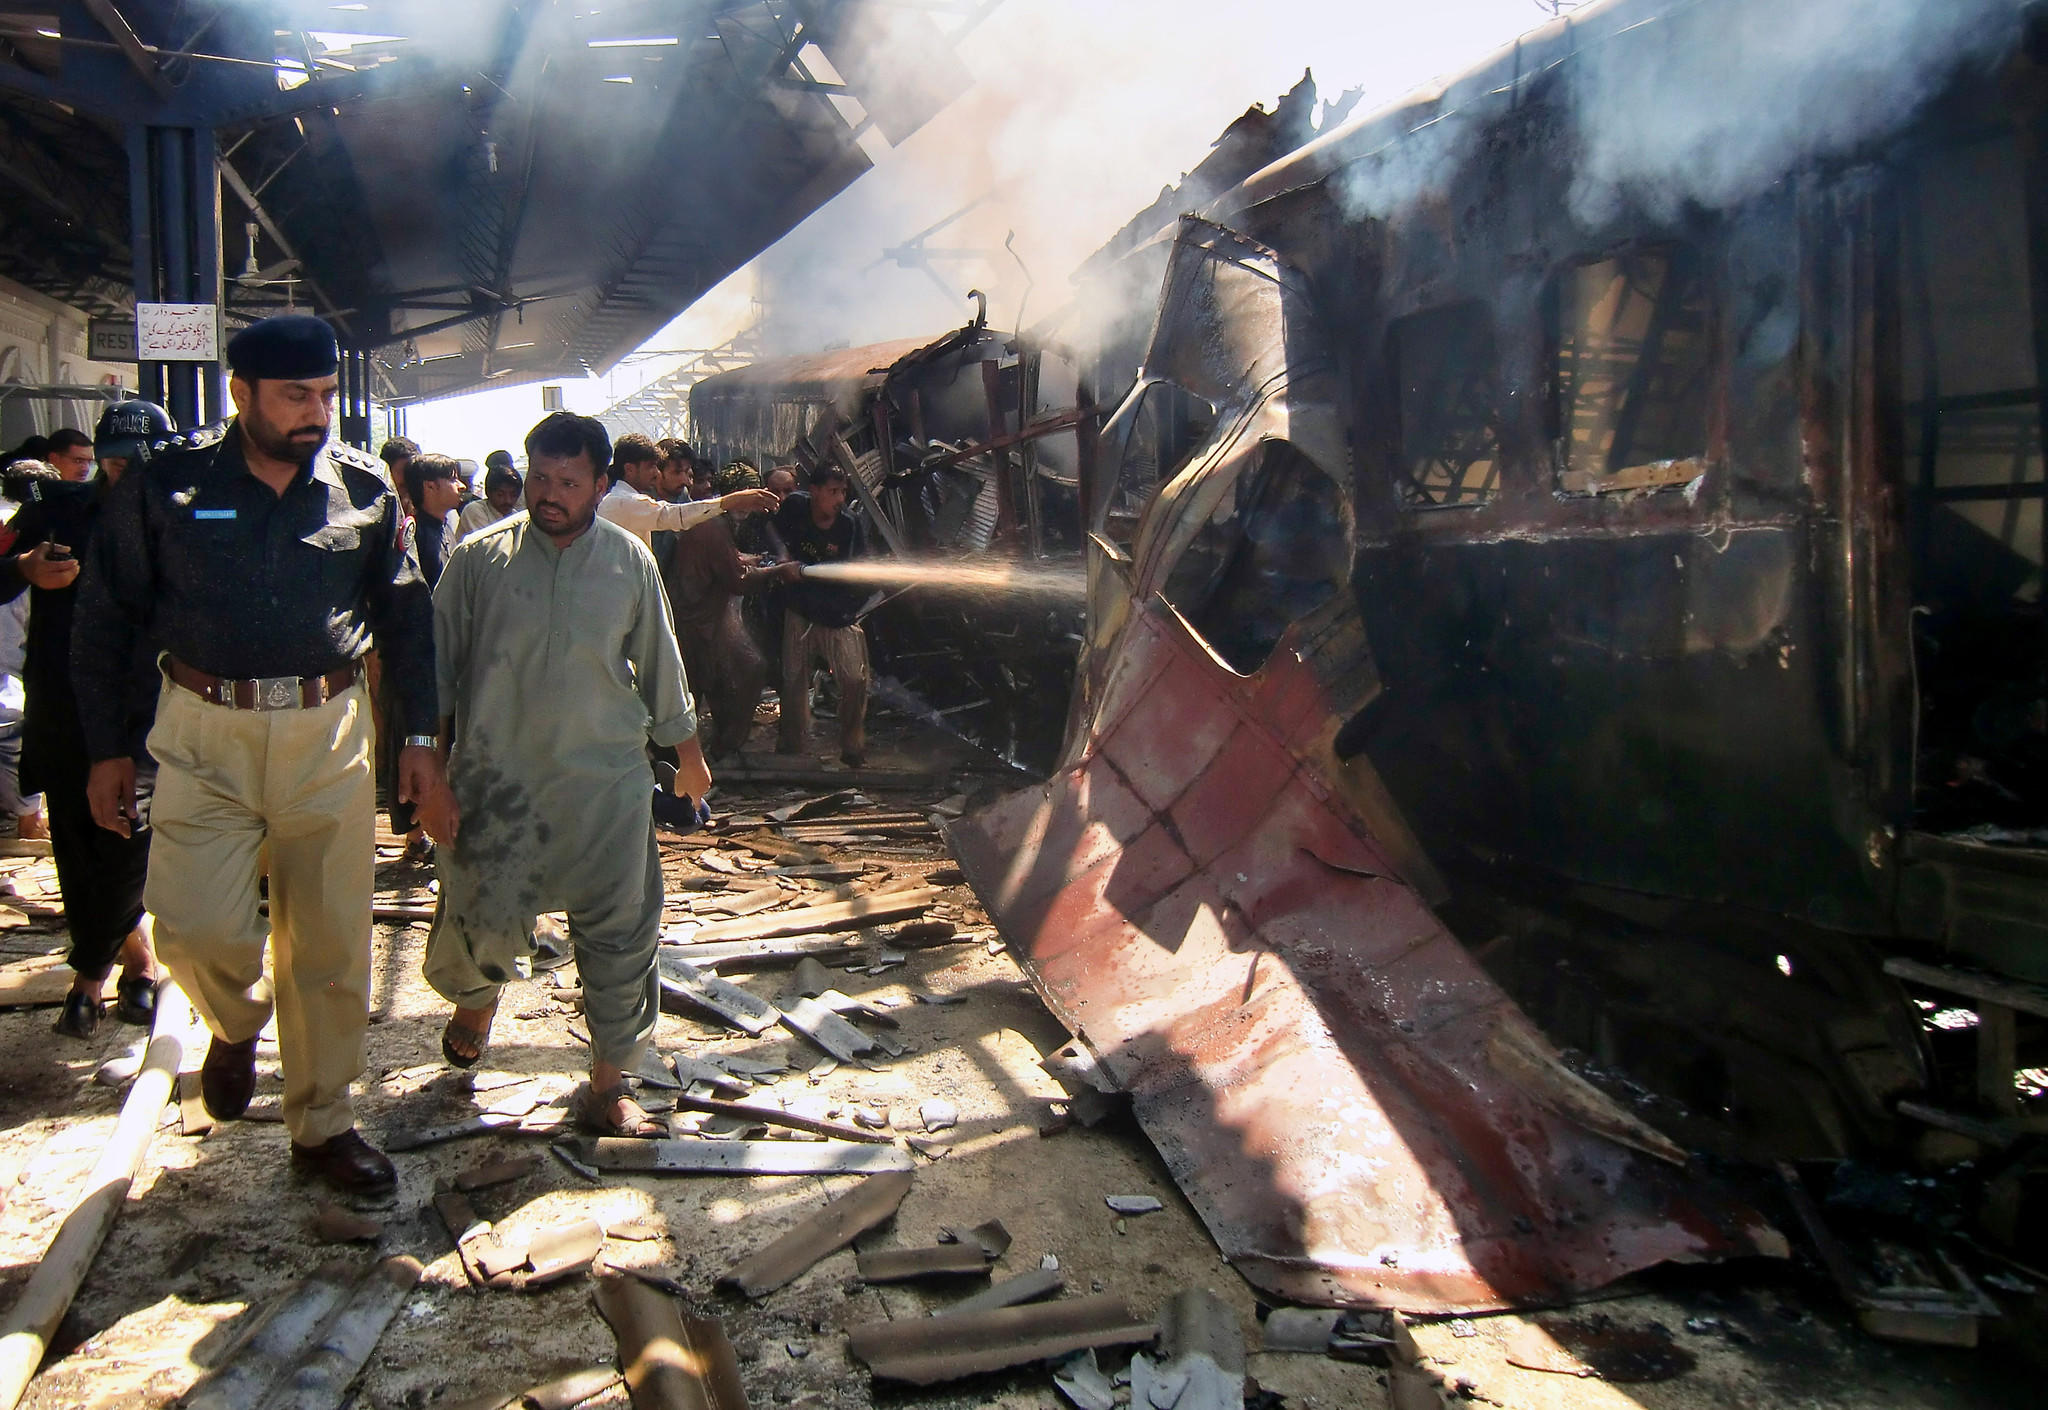 A police officer investigates as firefighters try to extinguish the flames after a train bombing in Pakistan's southwestern province of Baluchistan.